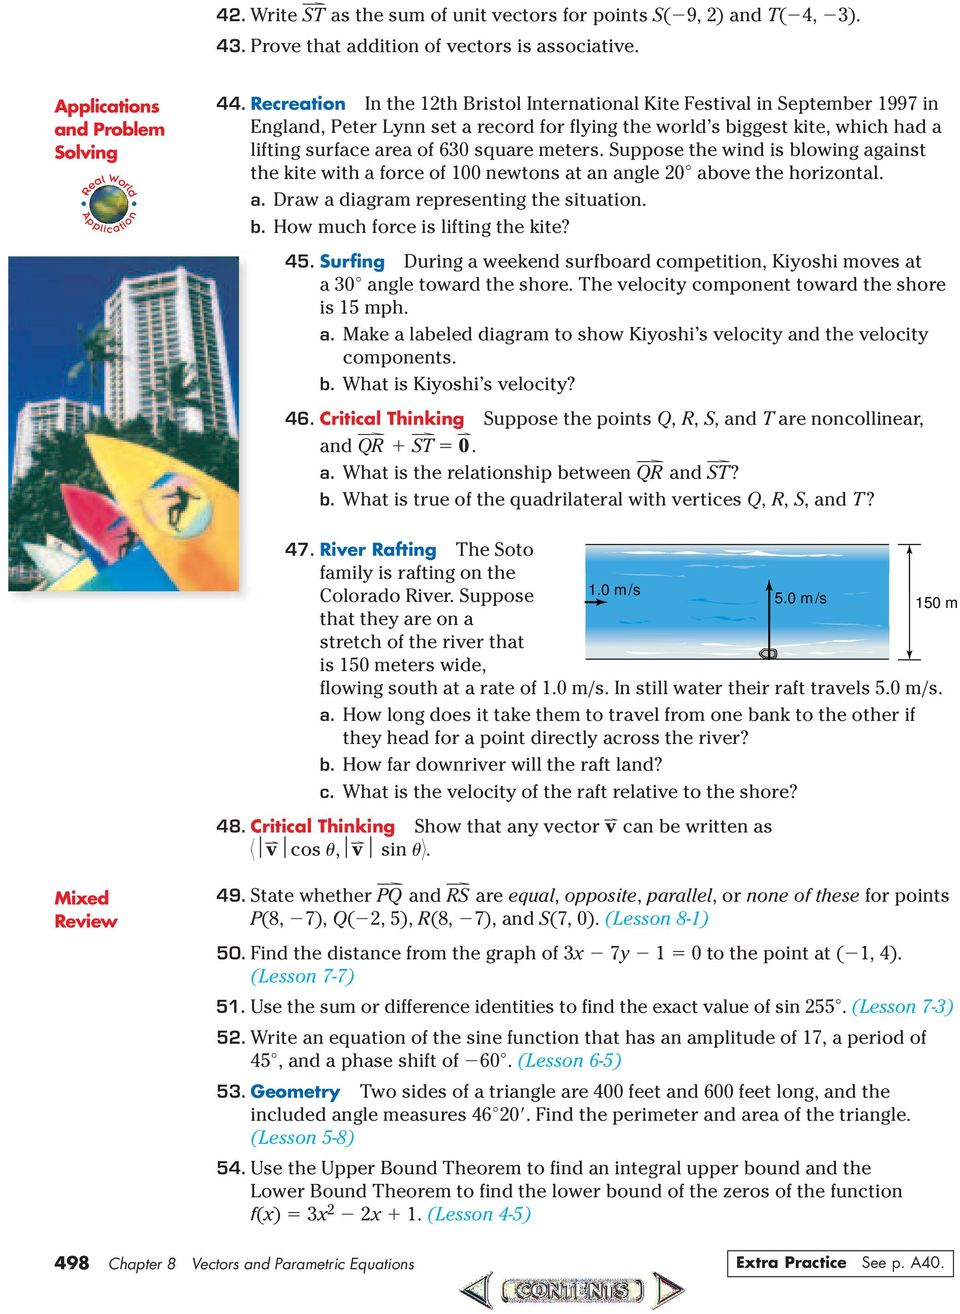 Vectors and parametric equations pdf suppose the wind is blowing against the kite with a force of newtons at an angle ccuart Gallery